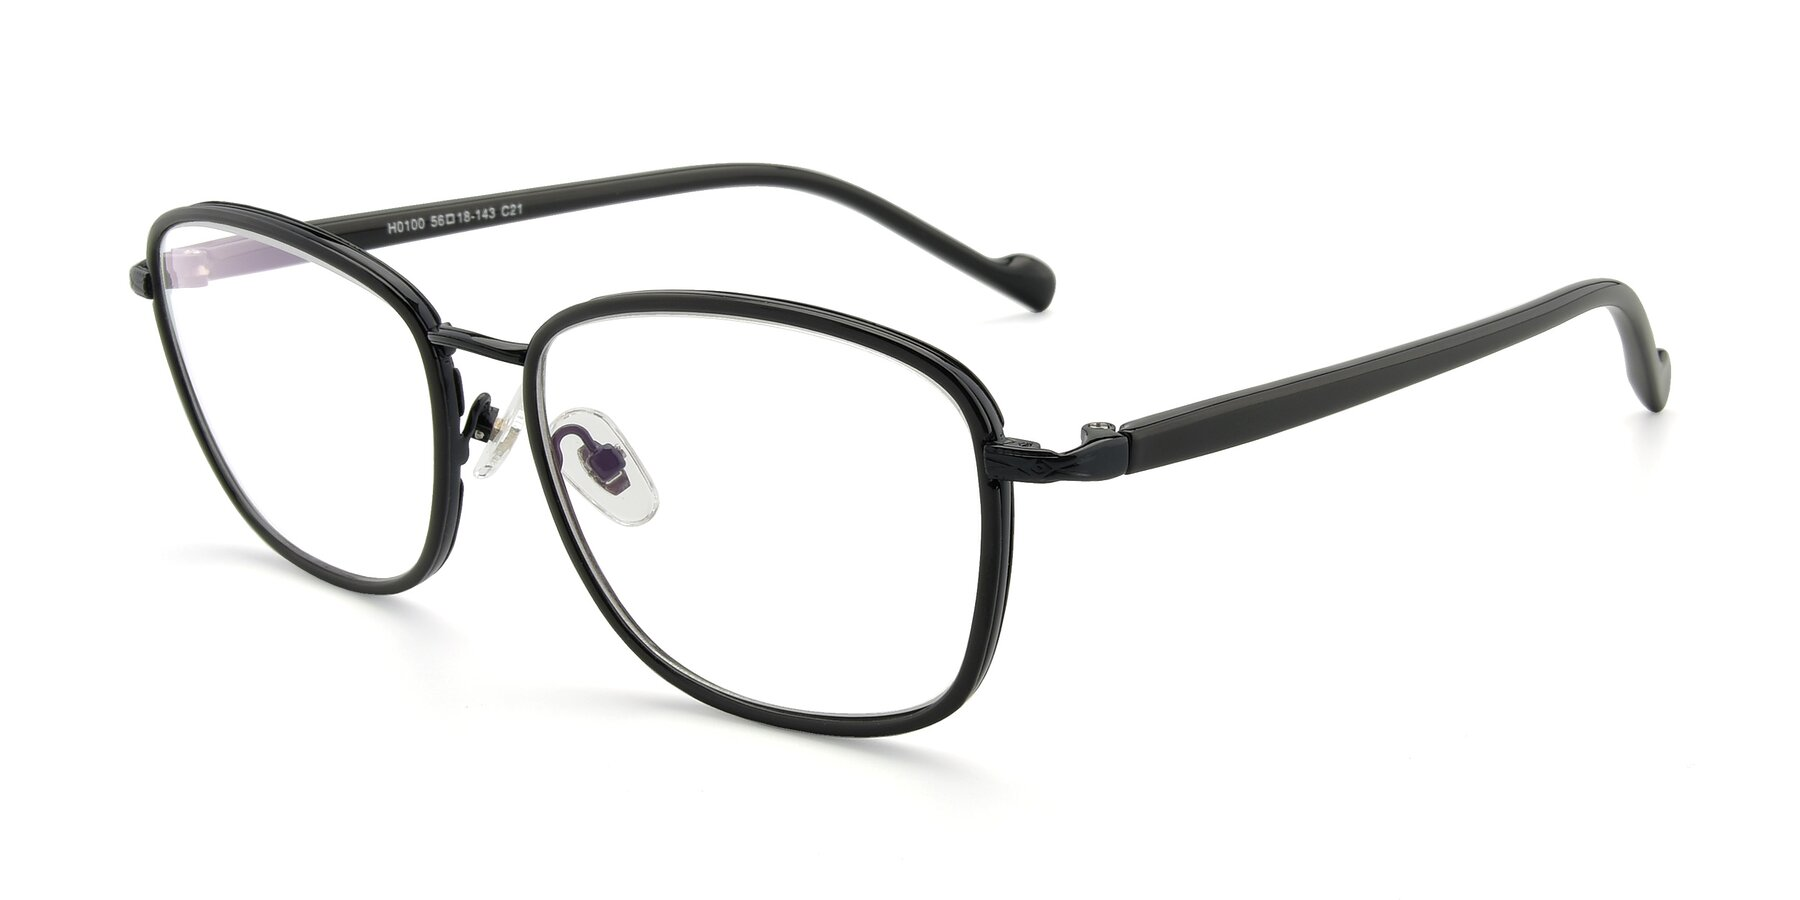 Angle of H0100 in Black with Clear Eyeglass Lenses